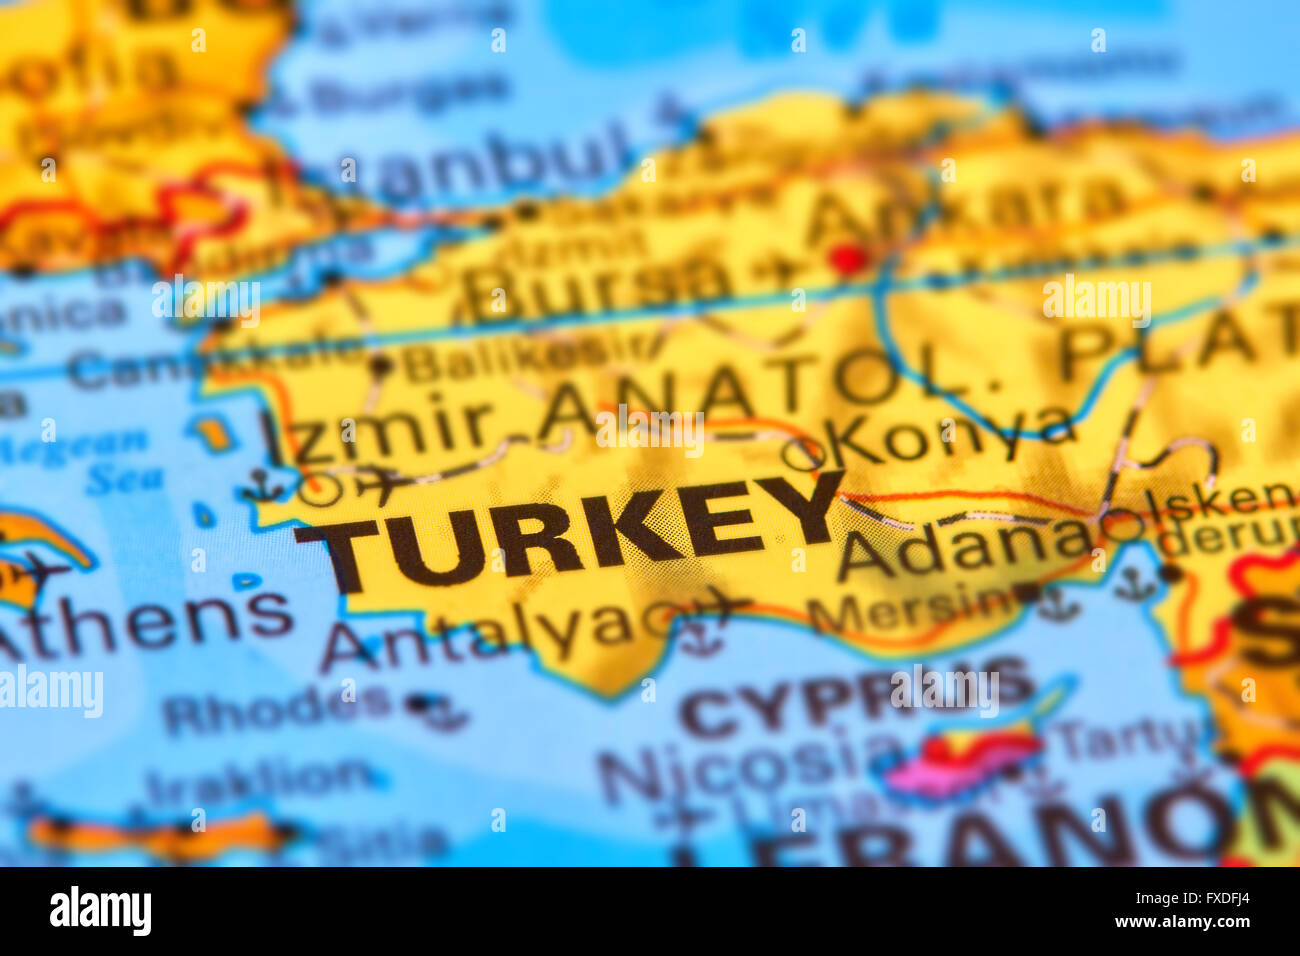 Map europe asia stock photos map europe asia stock images alamy turkey country in europe and asia on the world map stock image gumiabroncs Image collections